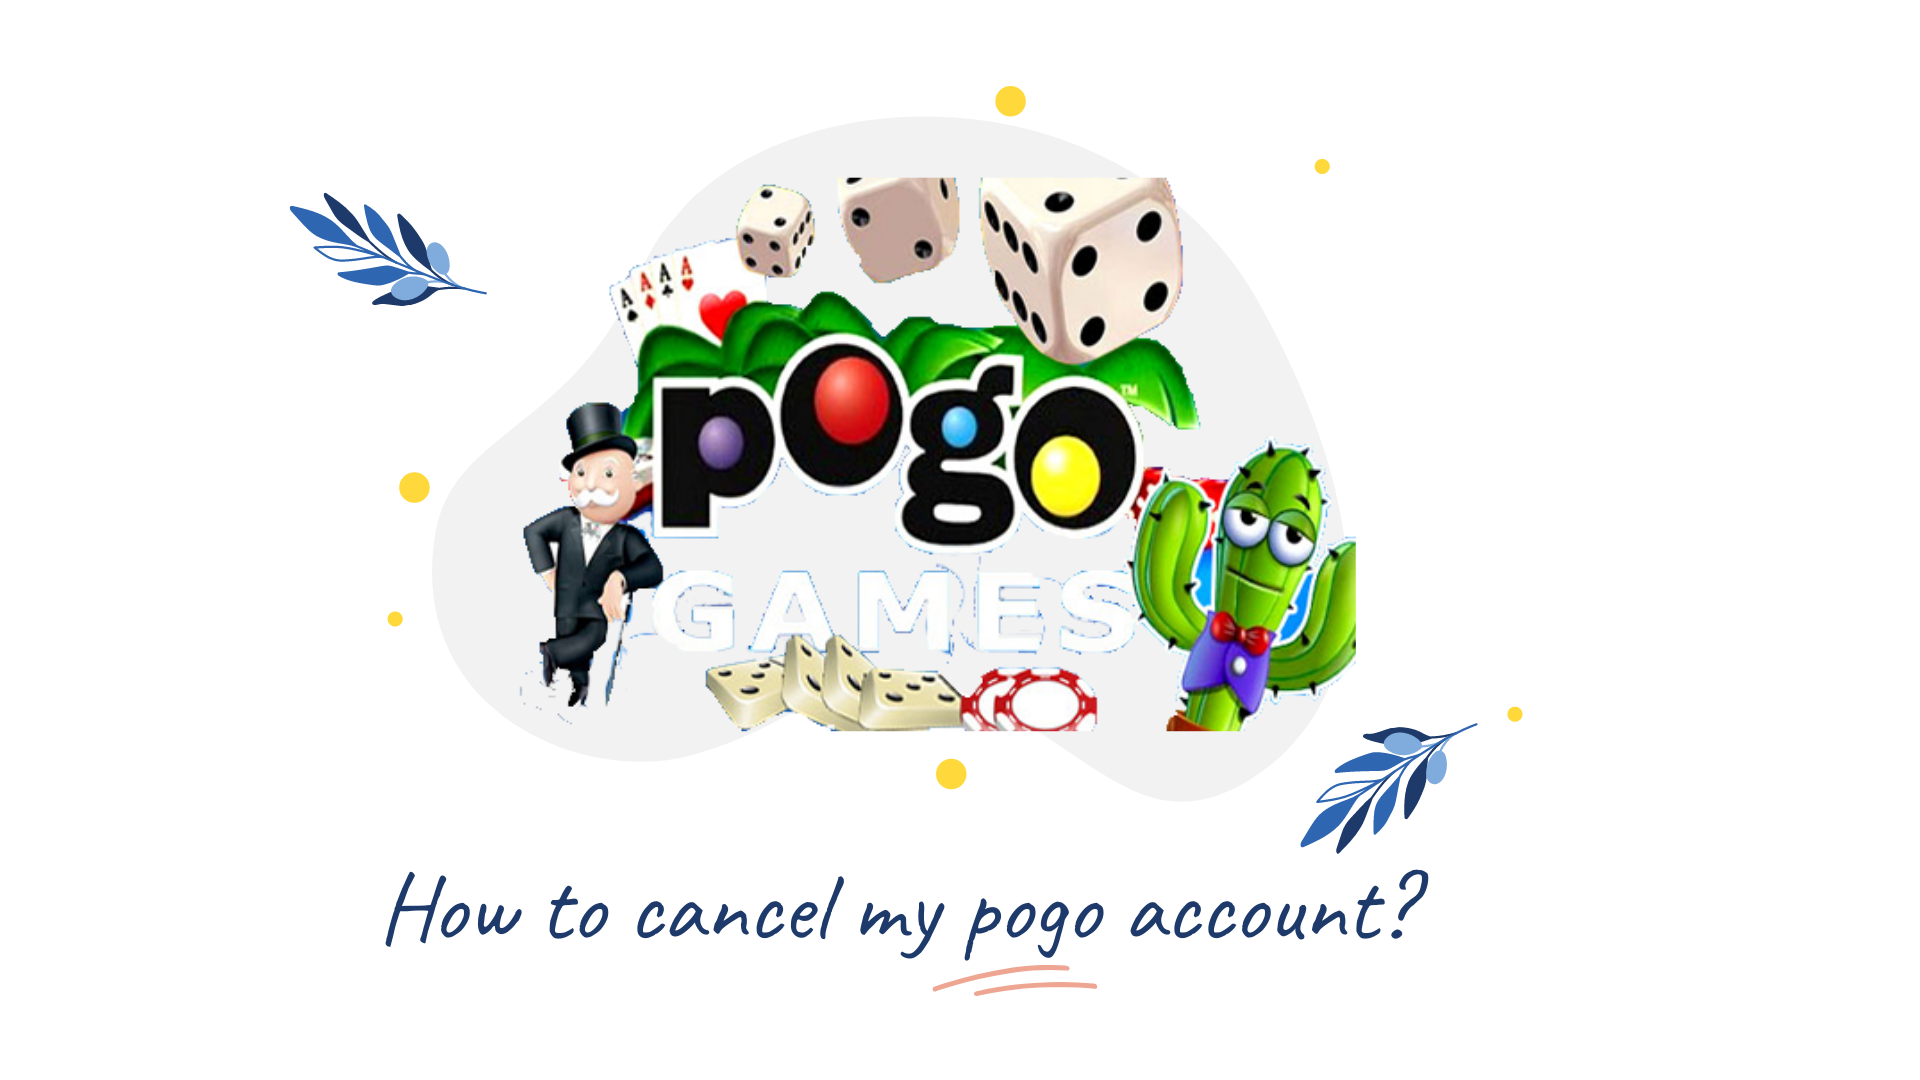 How to cancel my pogo account?